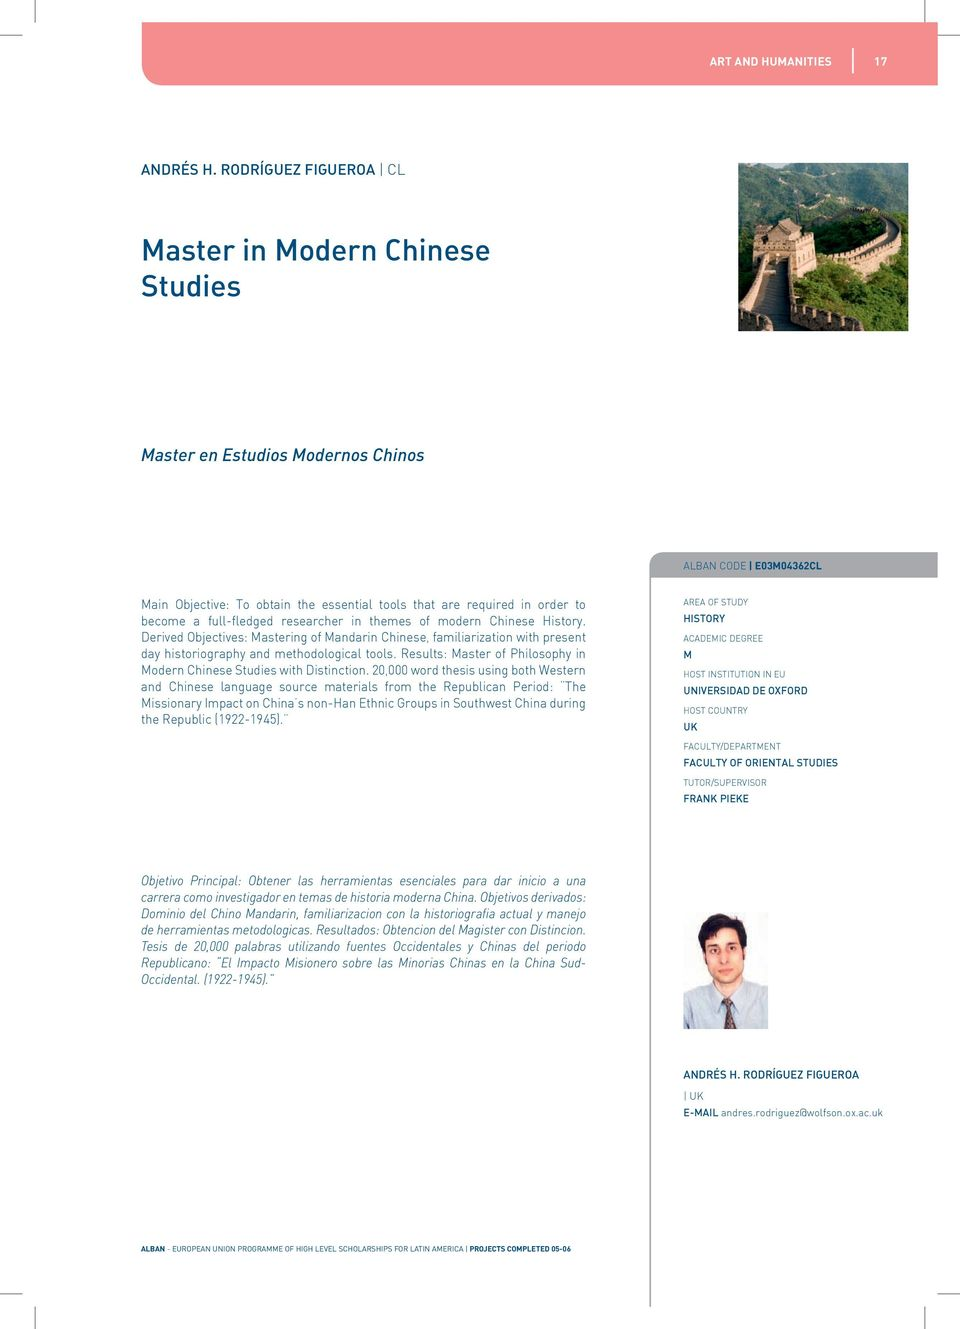 full-fledged researcher in themes of modern Chinese History. Derived Objectives: astering of andarin Chinese, familiarization with present day historiography and methodological tools.